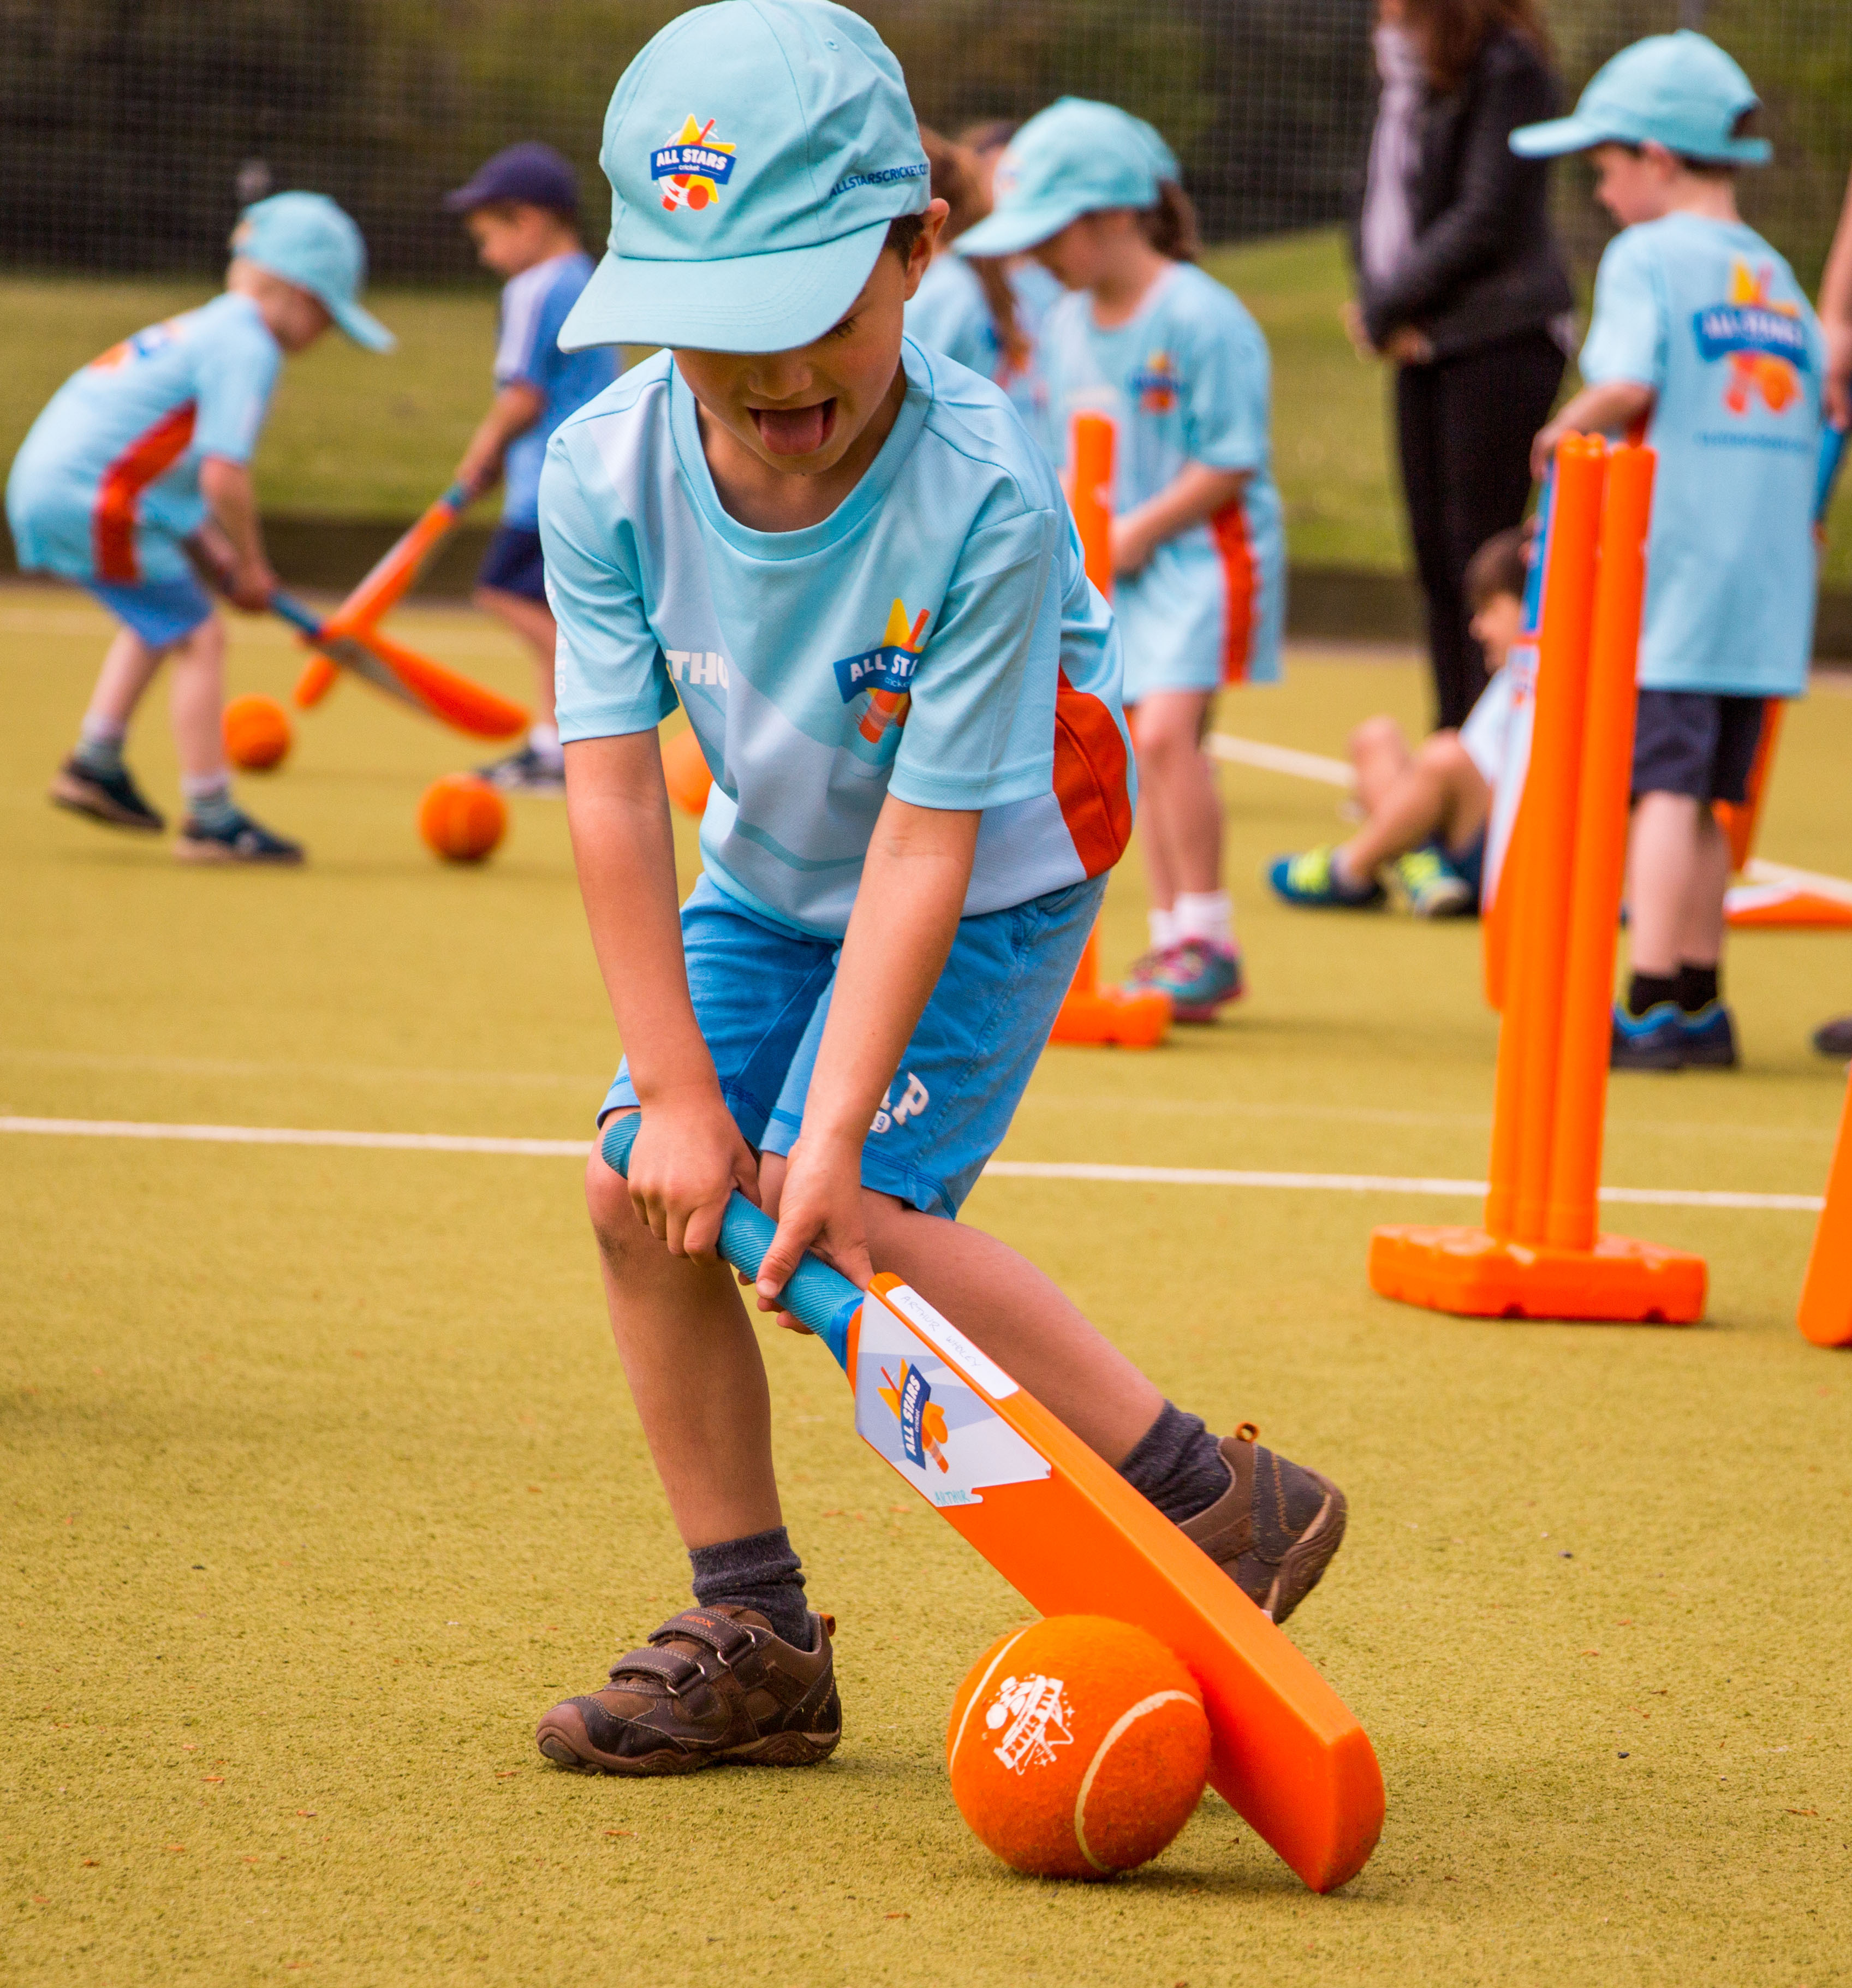 All Stars Cricket at Grayswood Cricket Club